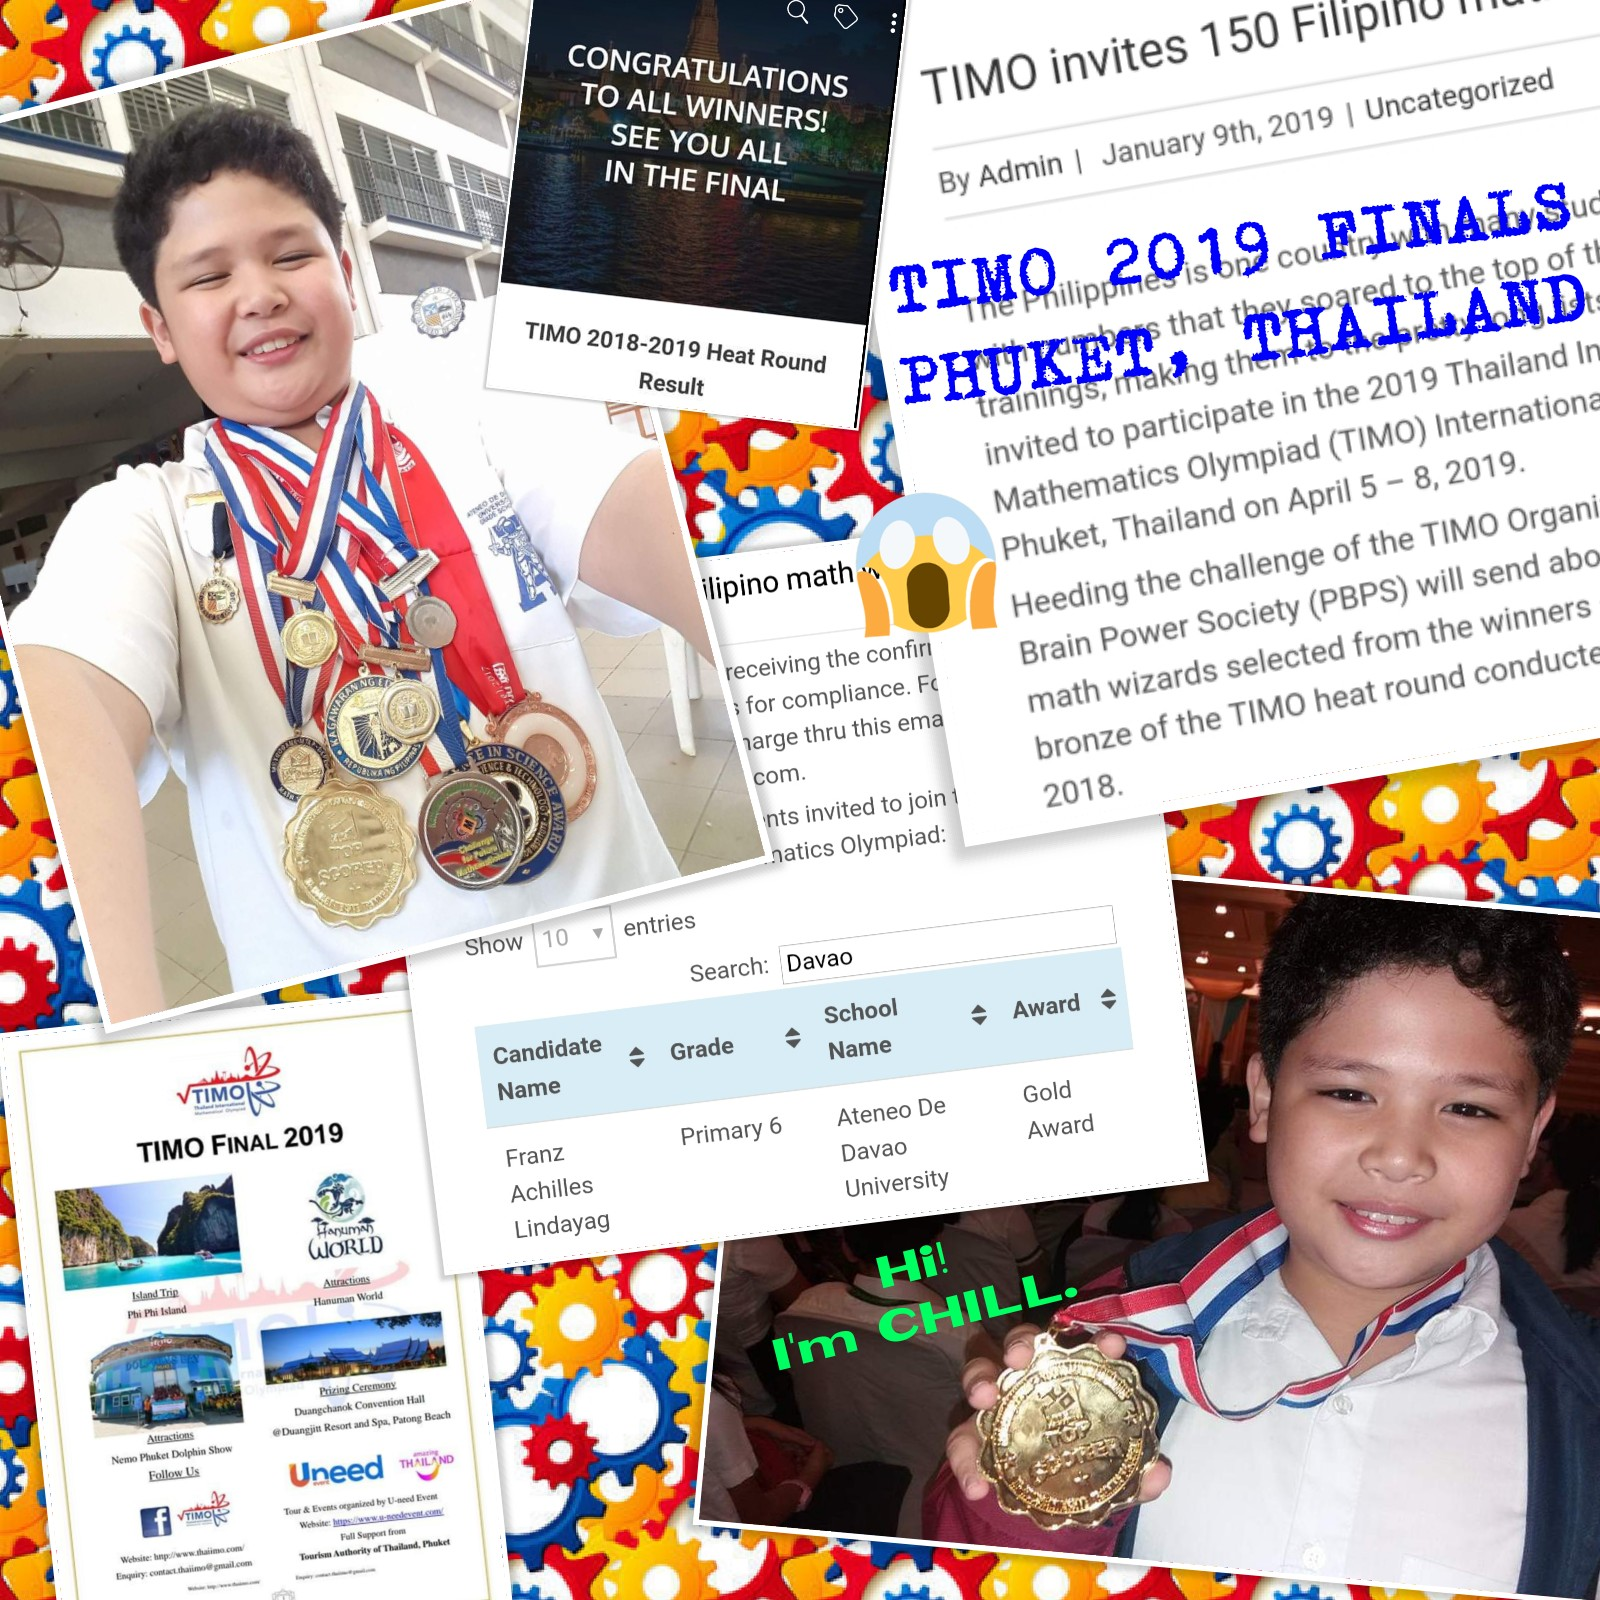 HELP FRANZ ACHILLES JOIN INTERNATIONAL CONTESTS ABROAD